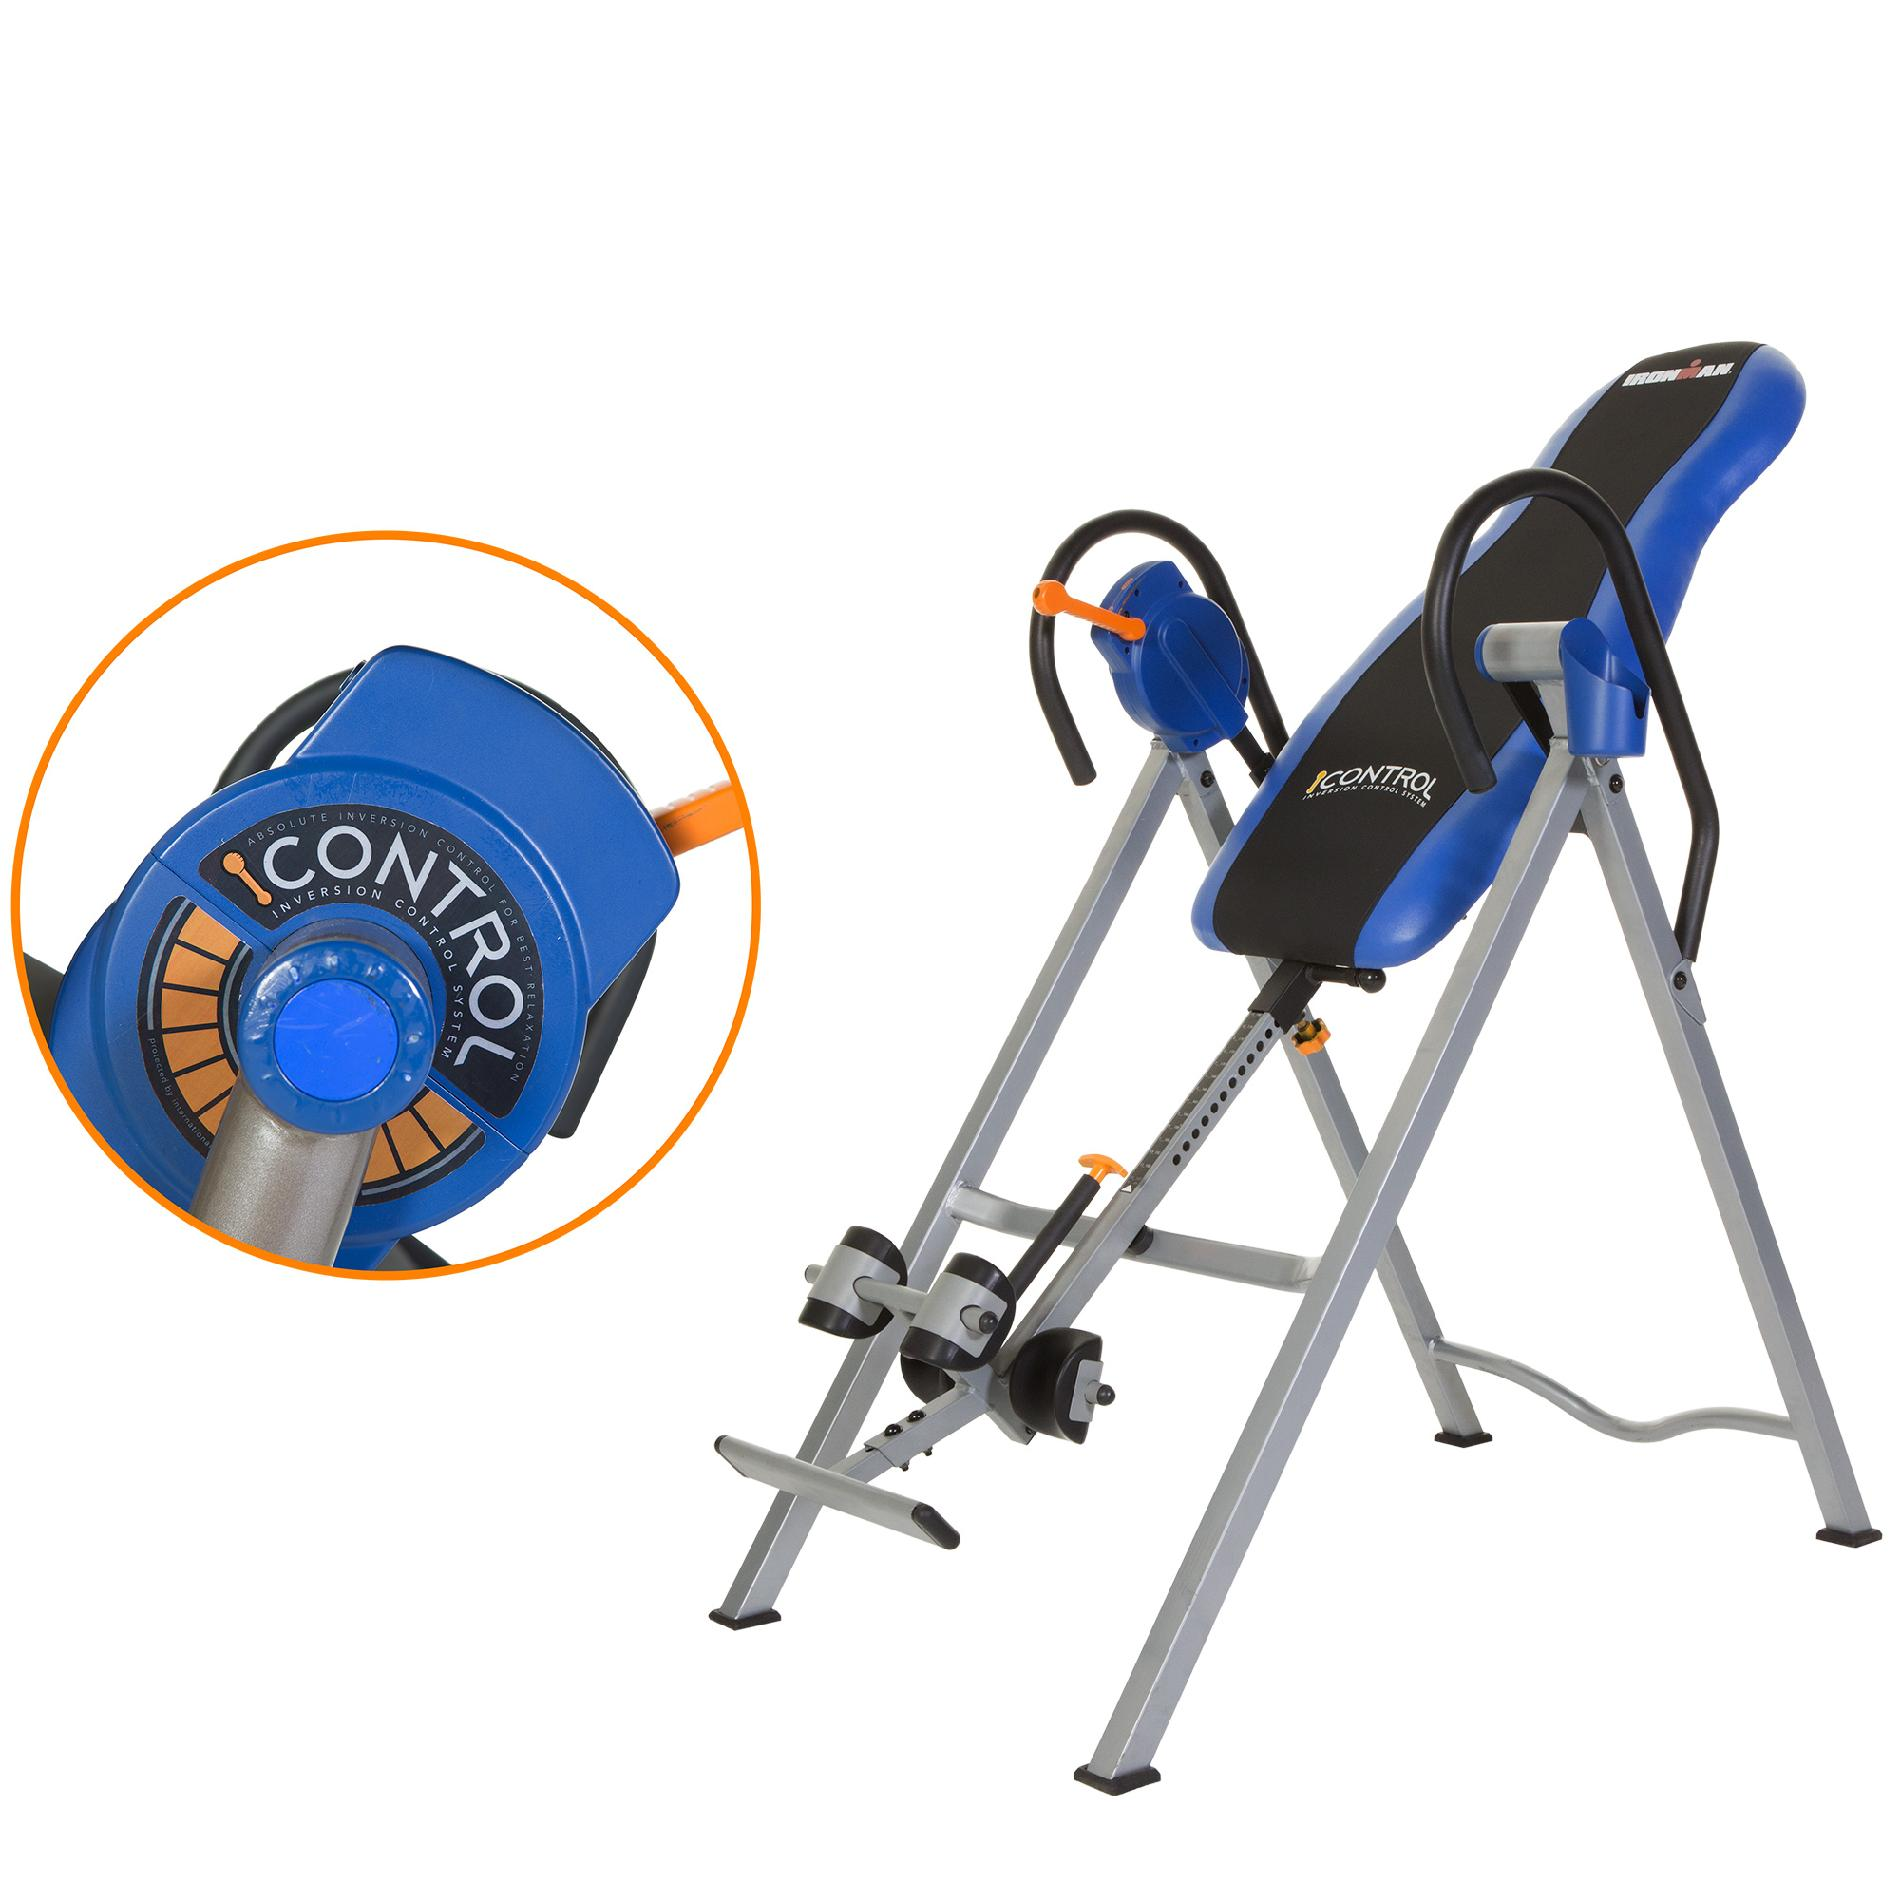 Pin By Bicity Reviews Hand Massage On Inversion Tables In 2021 Inversion Table Inversions No Equipment Workout